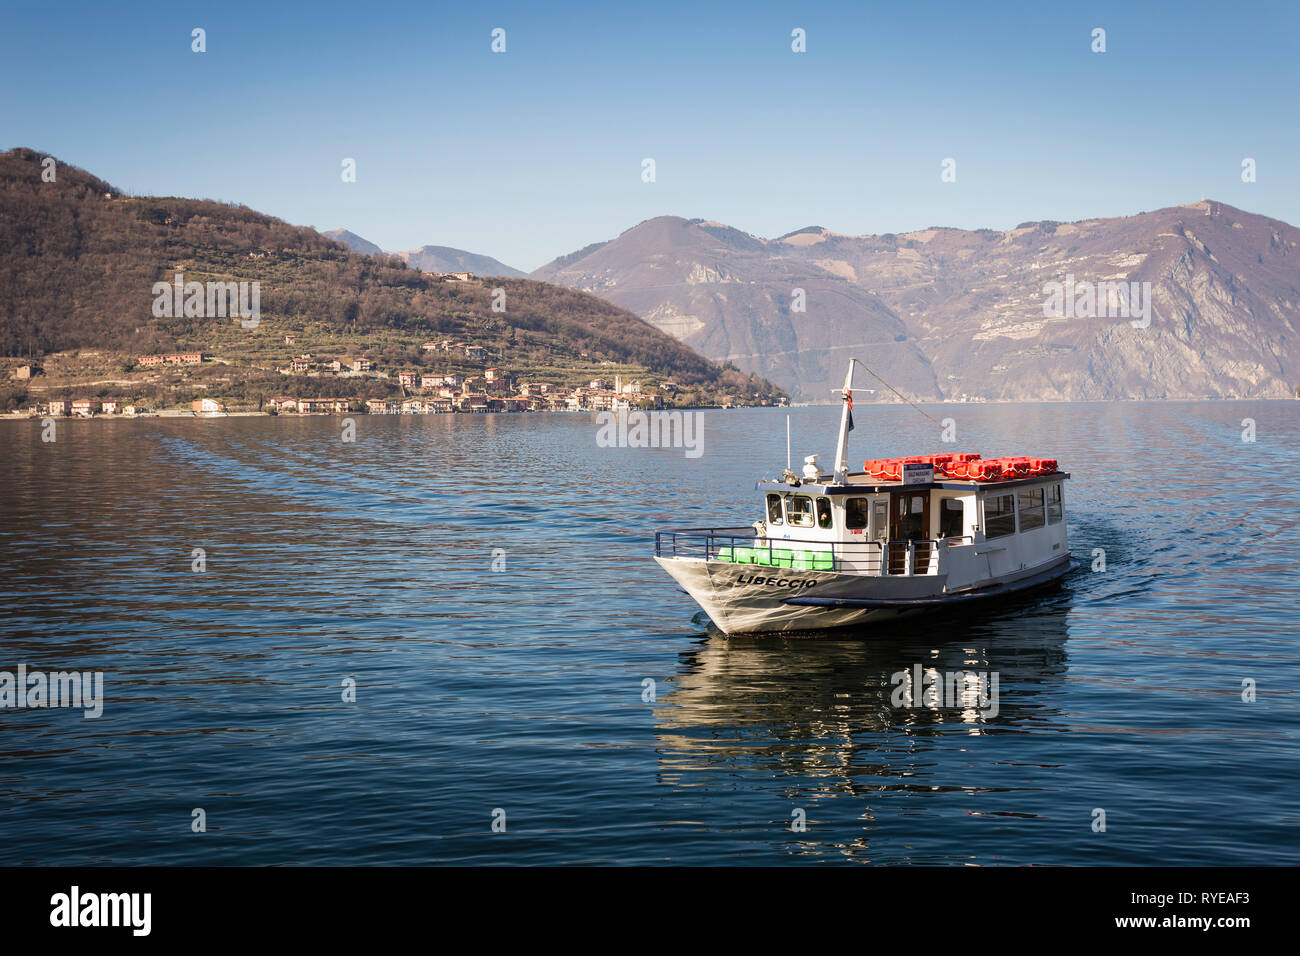 Boat on Iseo lake (Lago d'Iseo), Lombardy, Italy - Stock Image